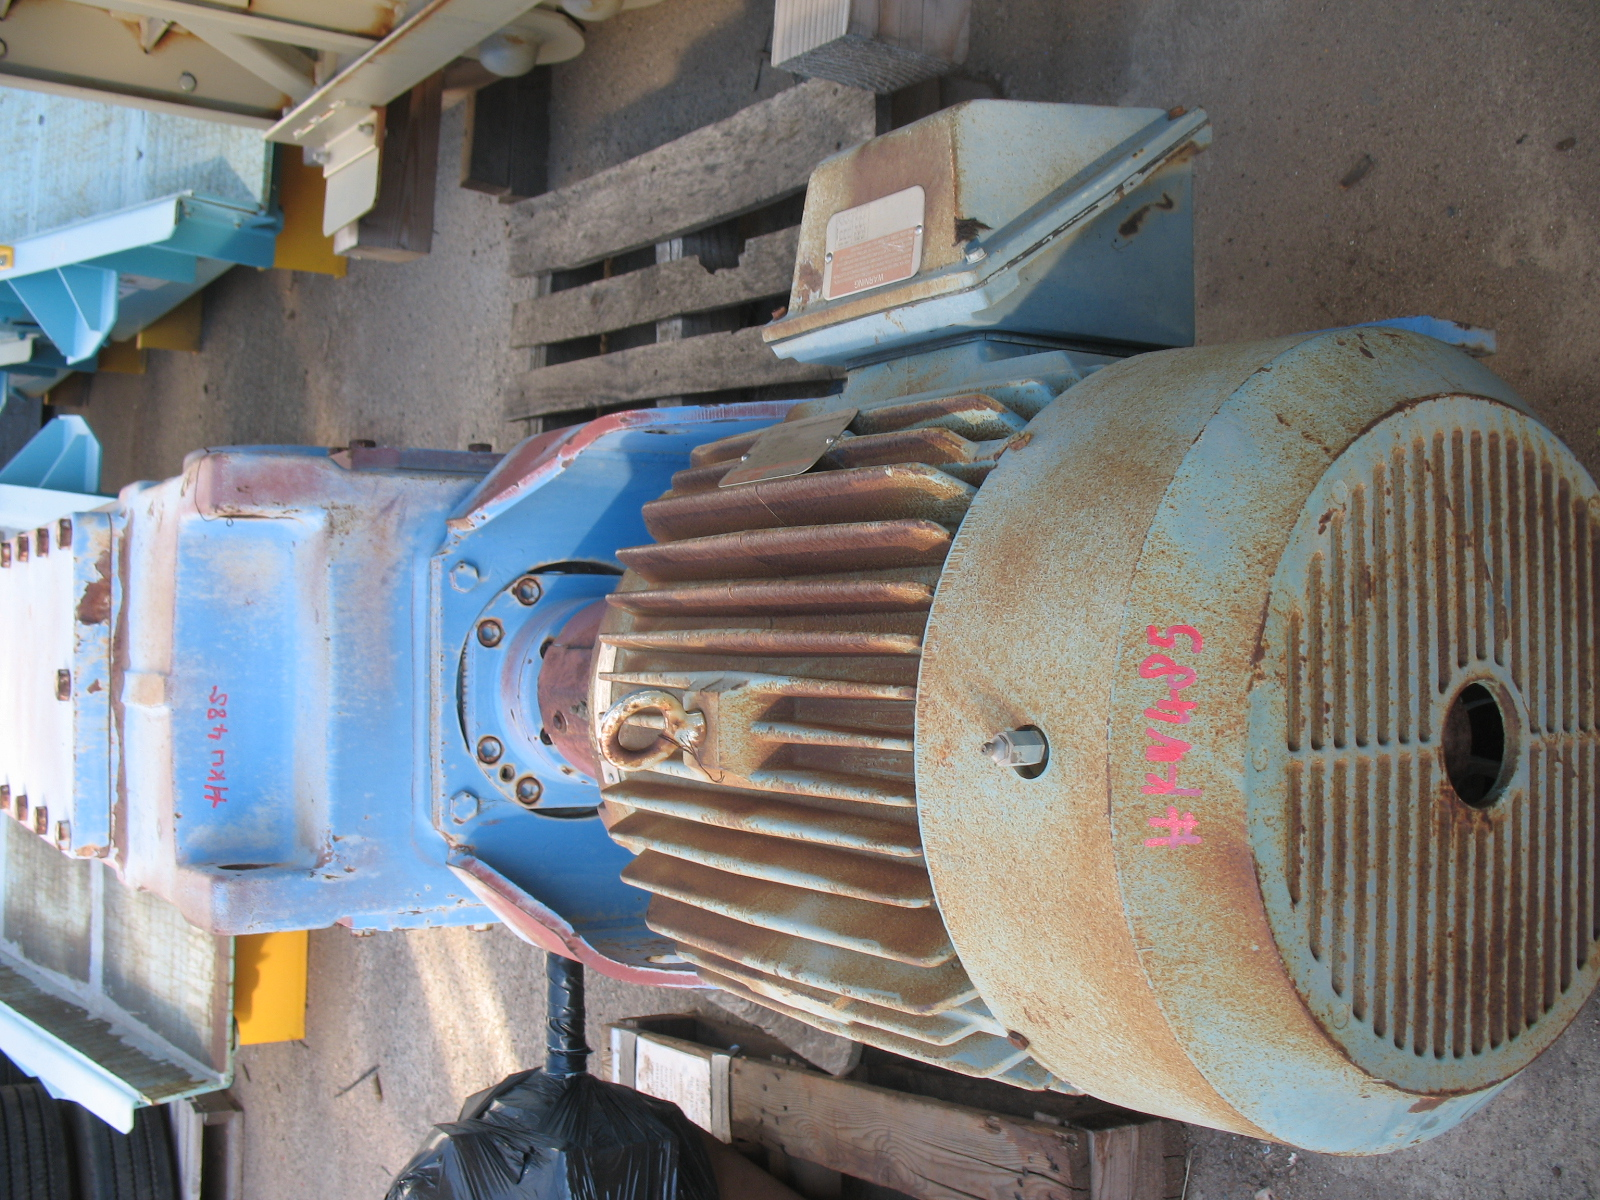 Flender Gear Reducer Drive Crushing Services International